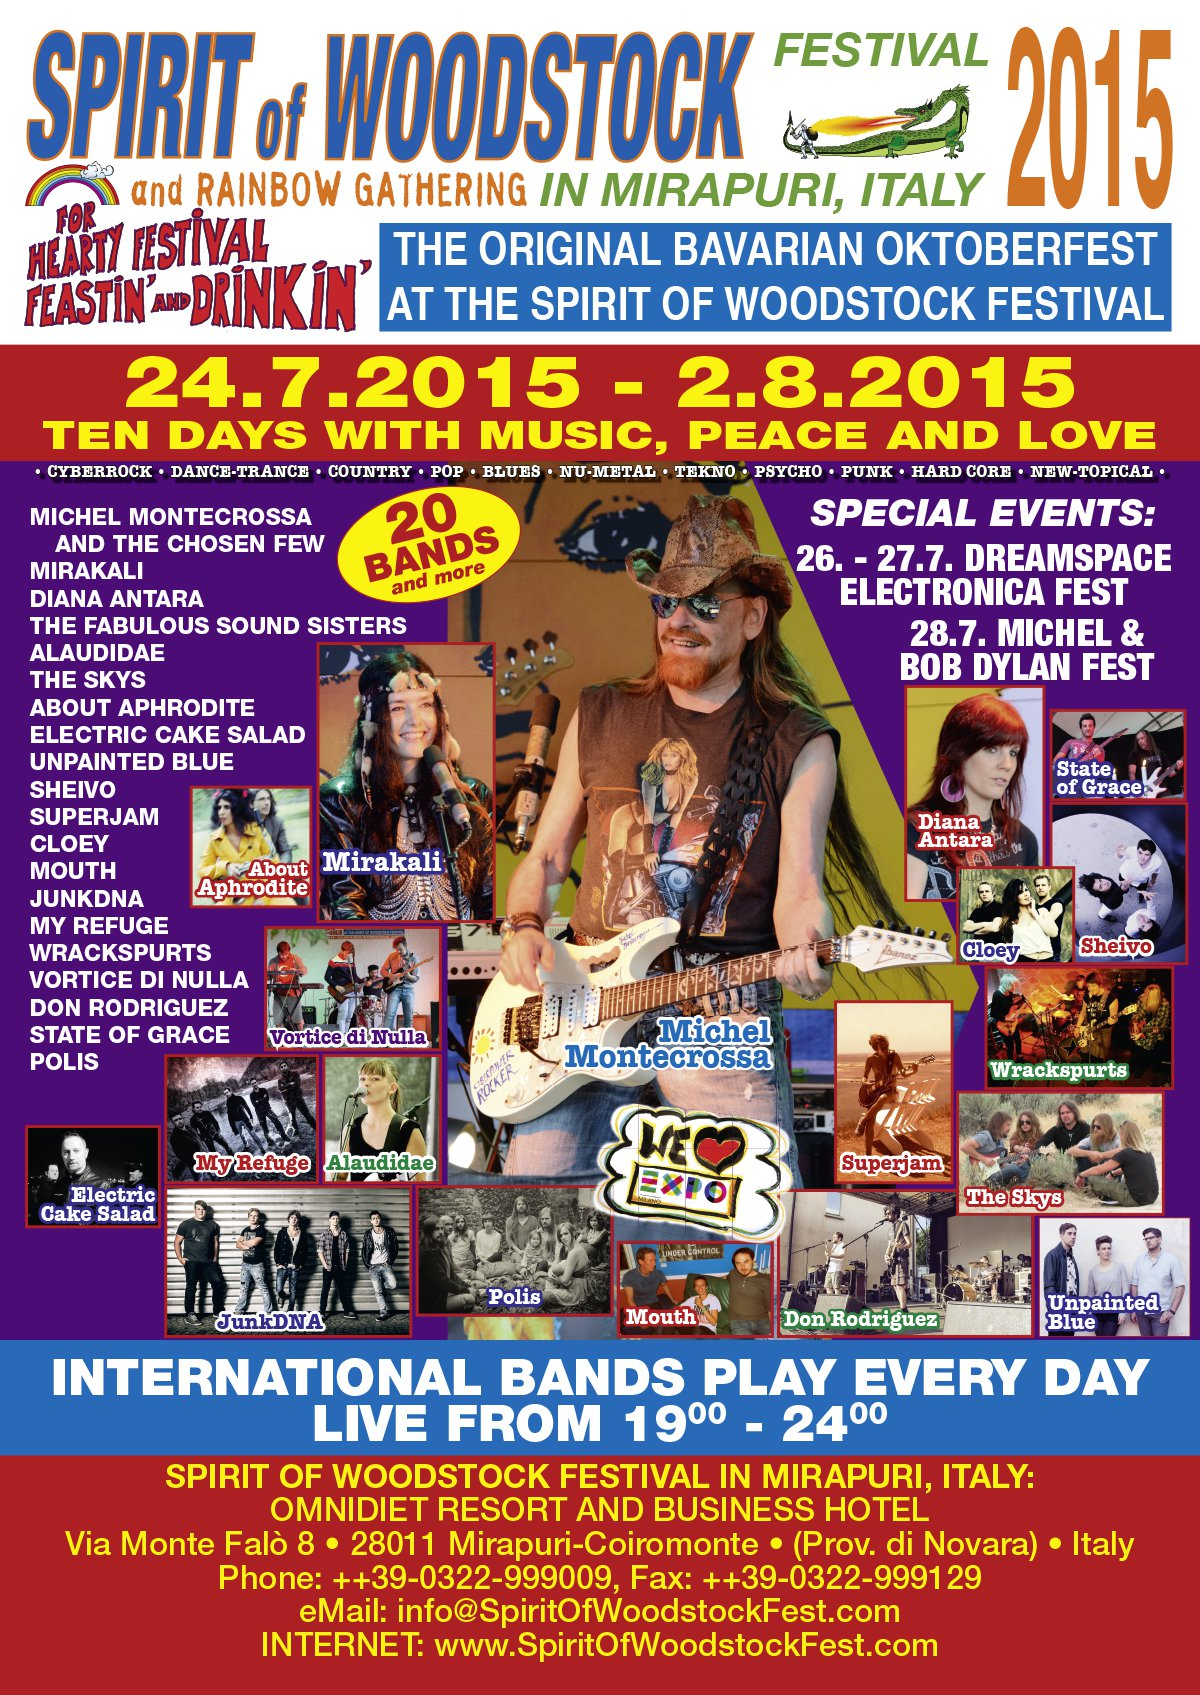 Spirit of Woodstock Festival 2015 in Mirapuri, Italy